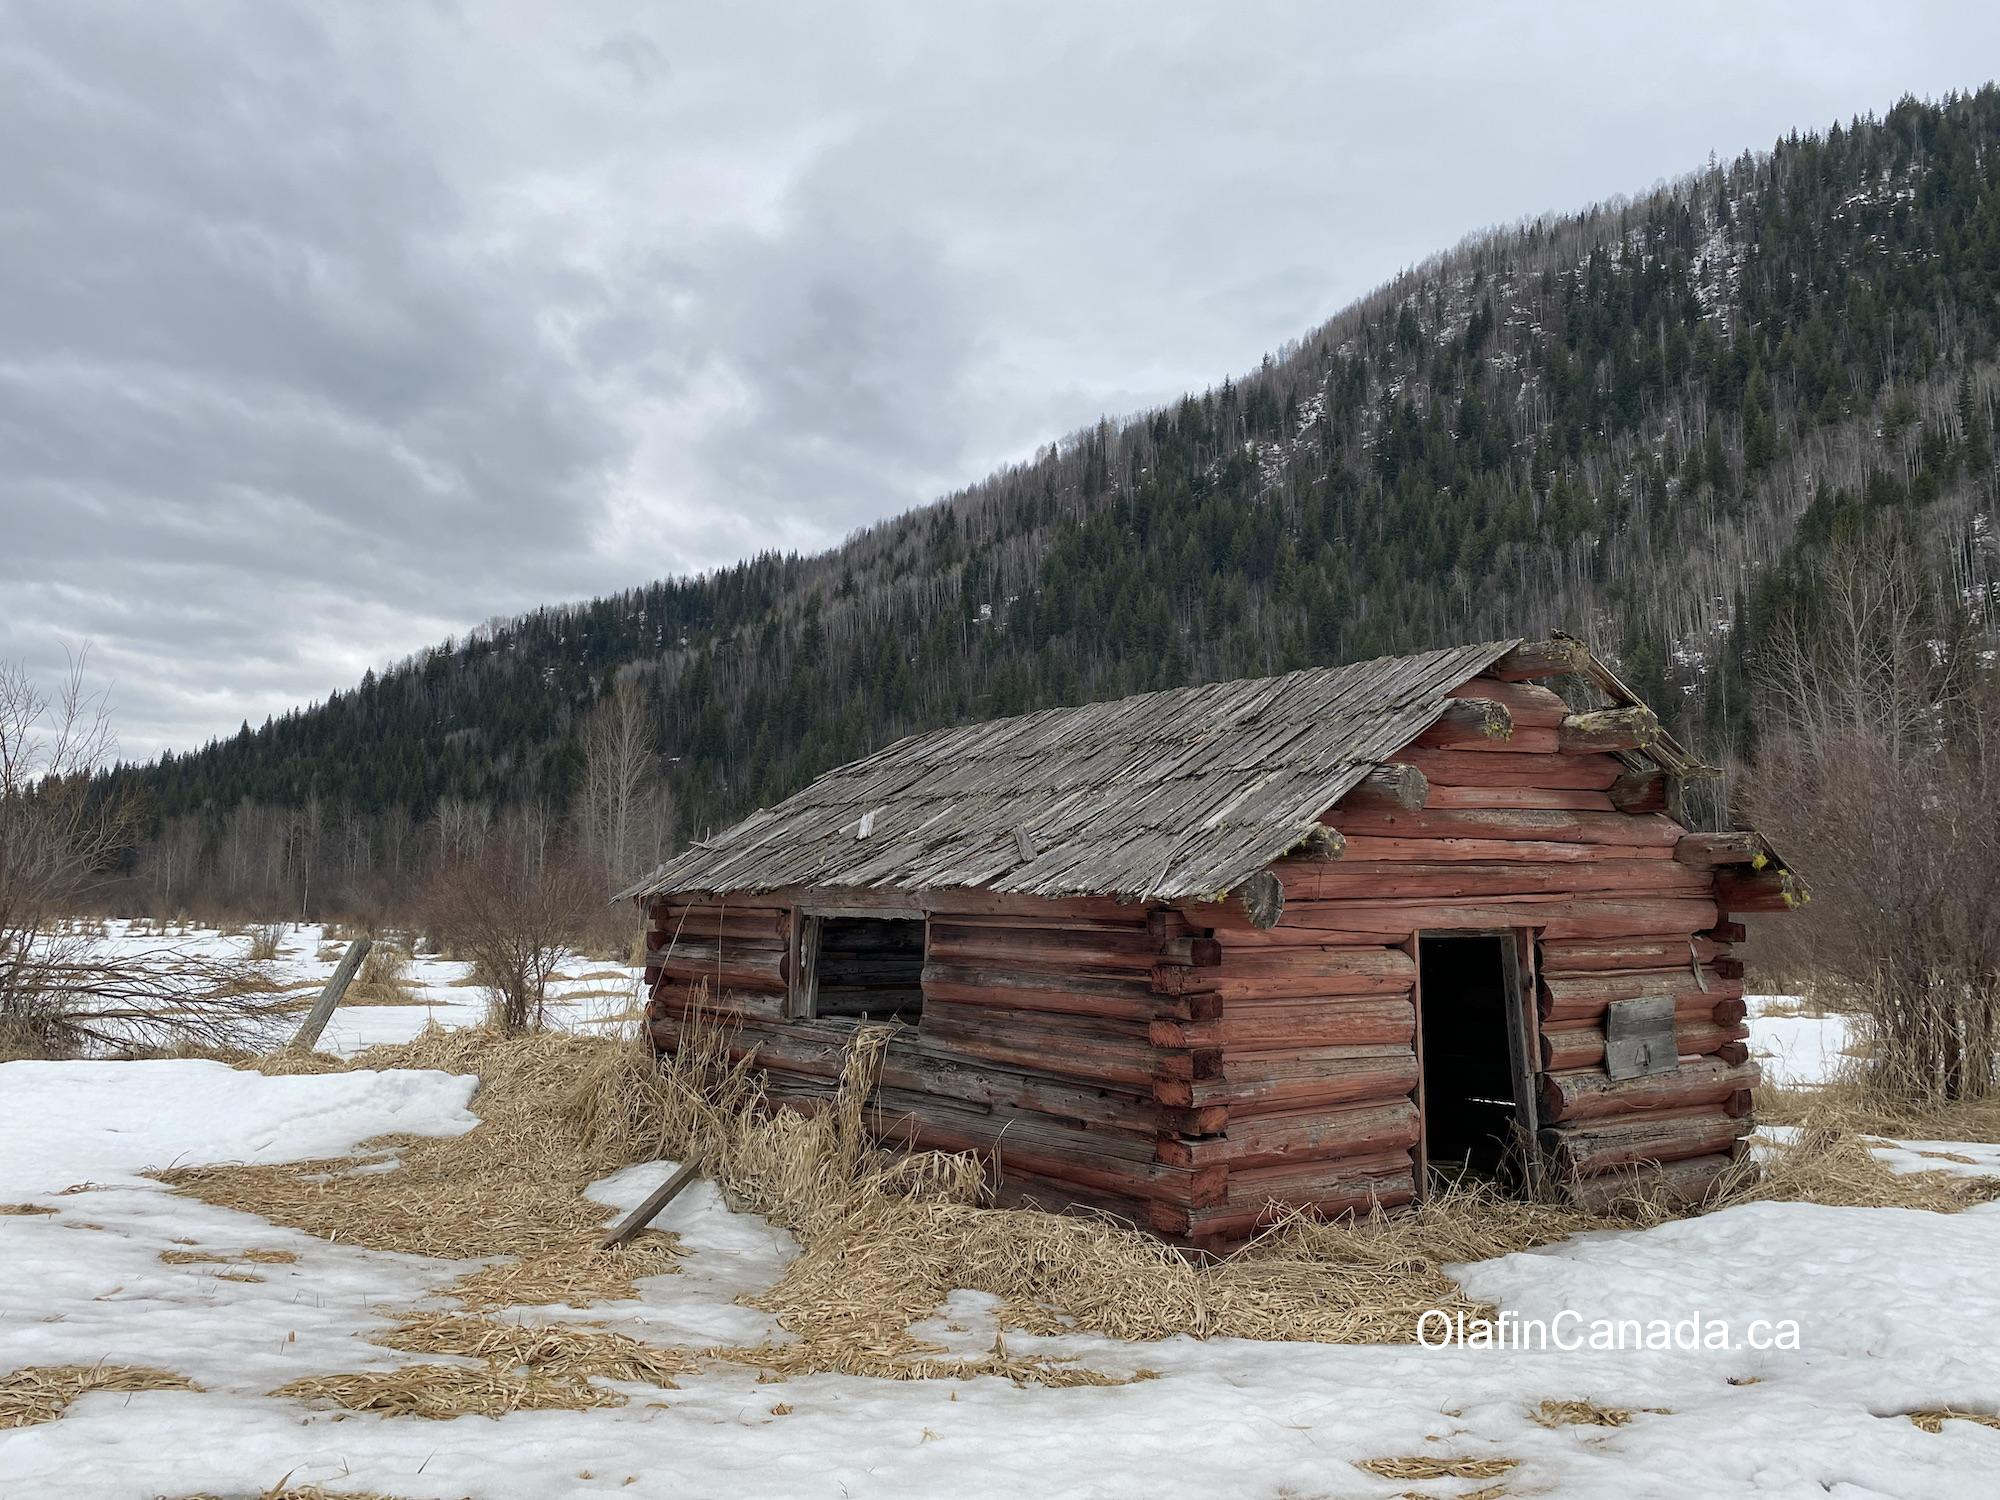 Old cabin near abandoned home on the Clearwater Valley Road in south Wells Gray Park #olafincanada #britishcolumbia #discoverbc #abandonedbc #cabin